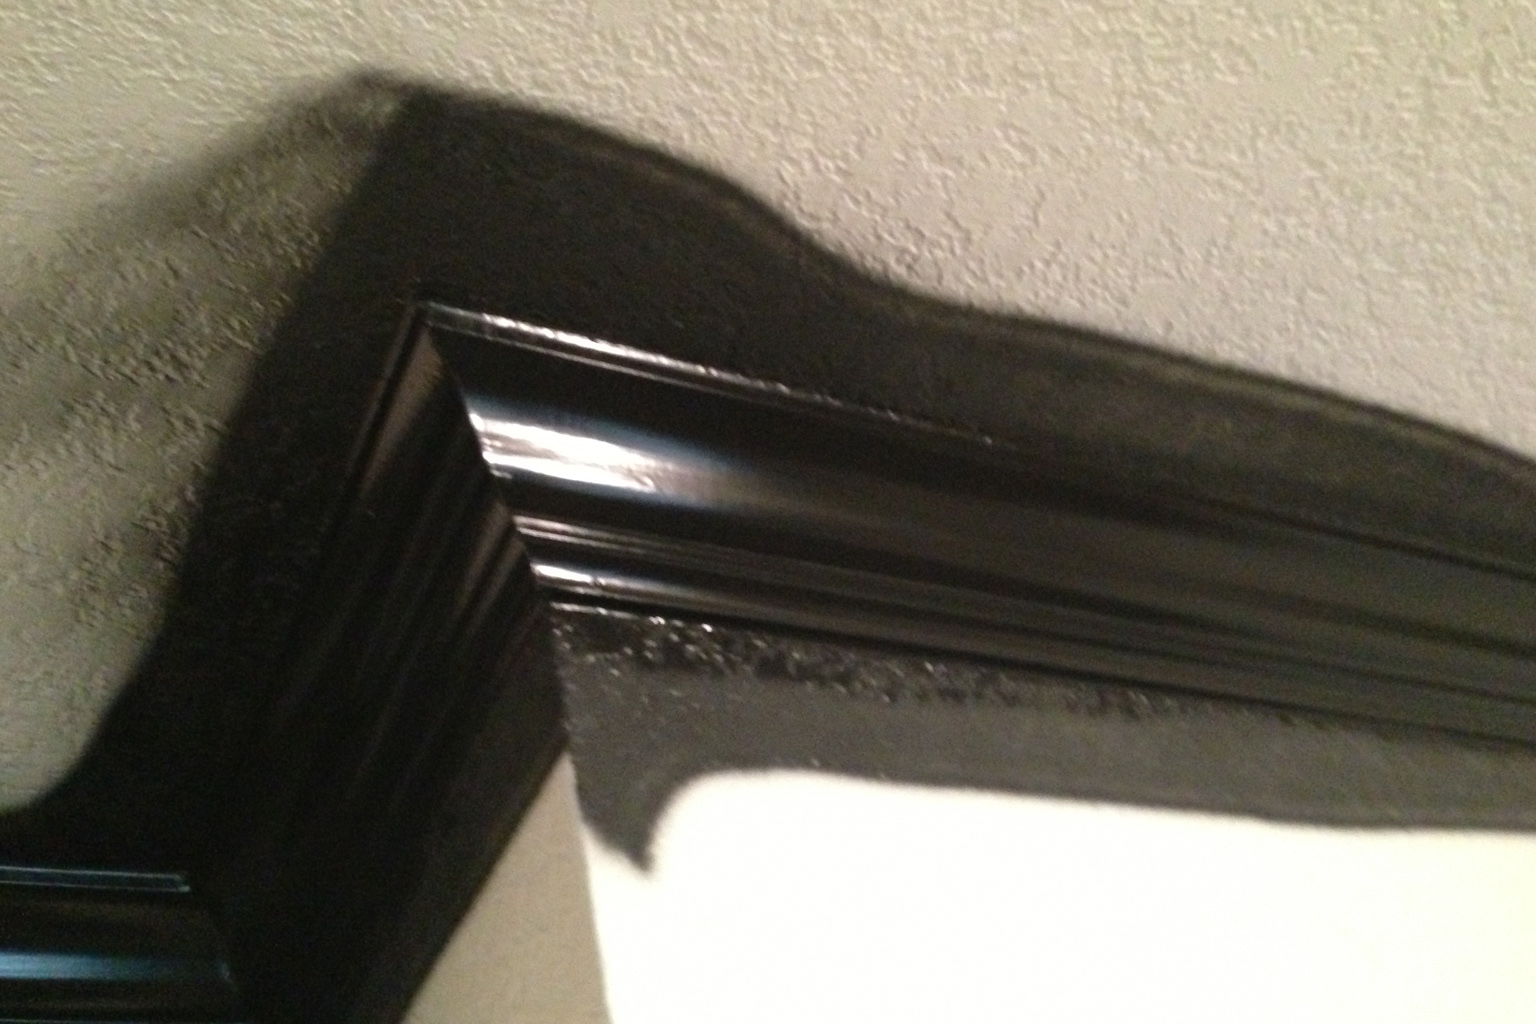 The glossy black will settle down to a rich satin finish. The walls and ceiling will be a true photo neutral gray.